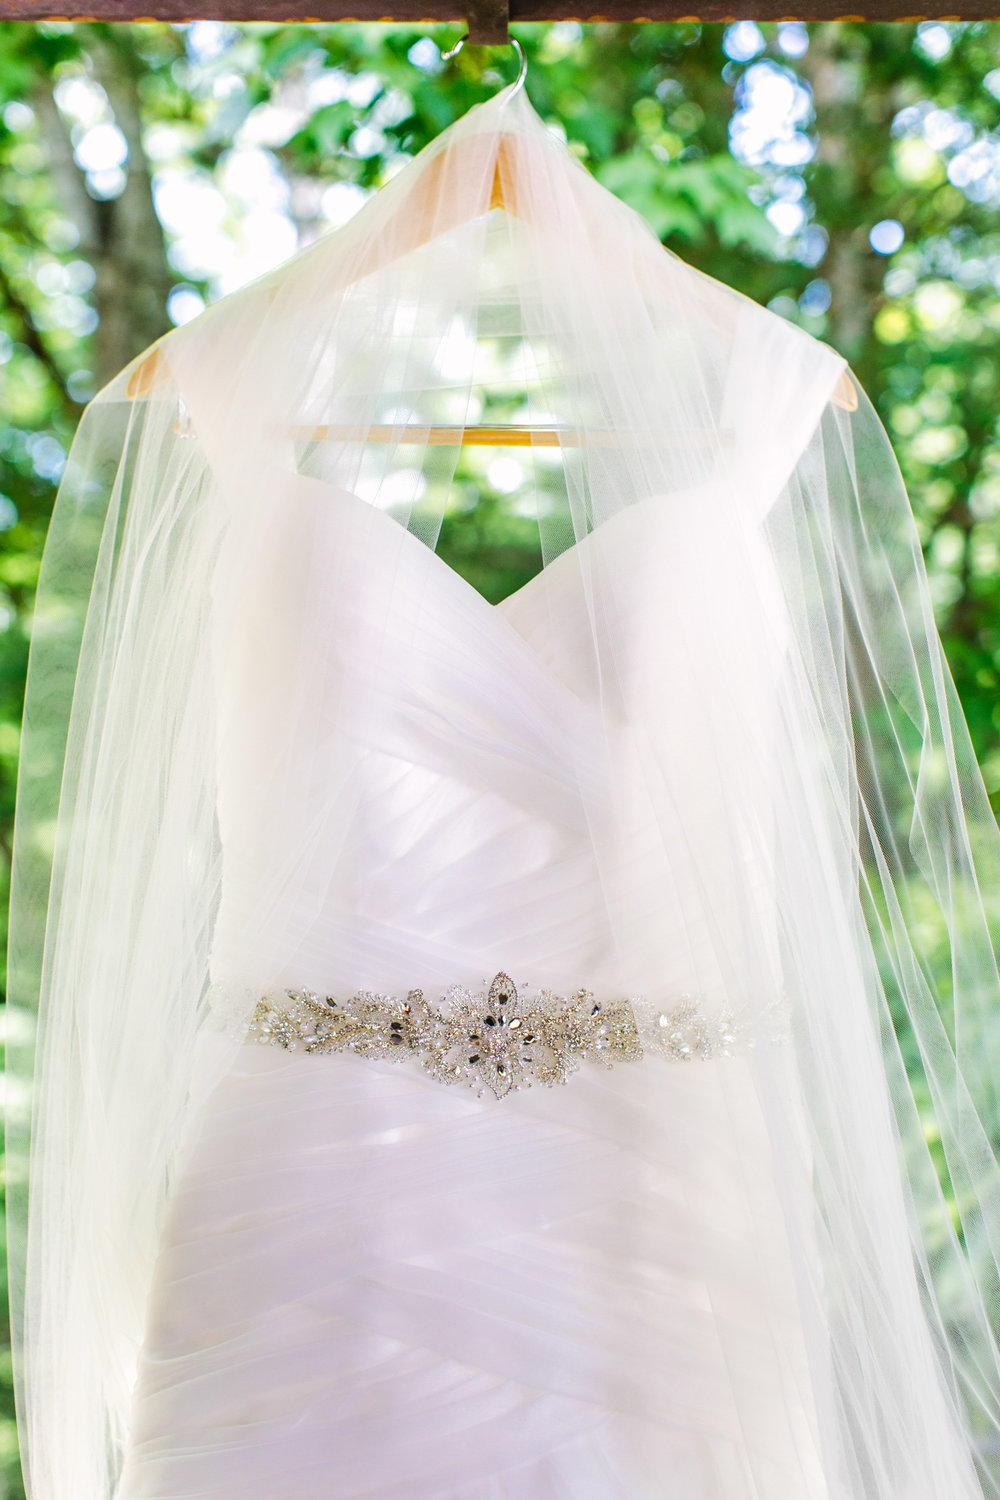 Knoxville Photographer Classic Outdoor Wedding Dress Veil